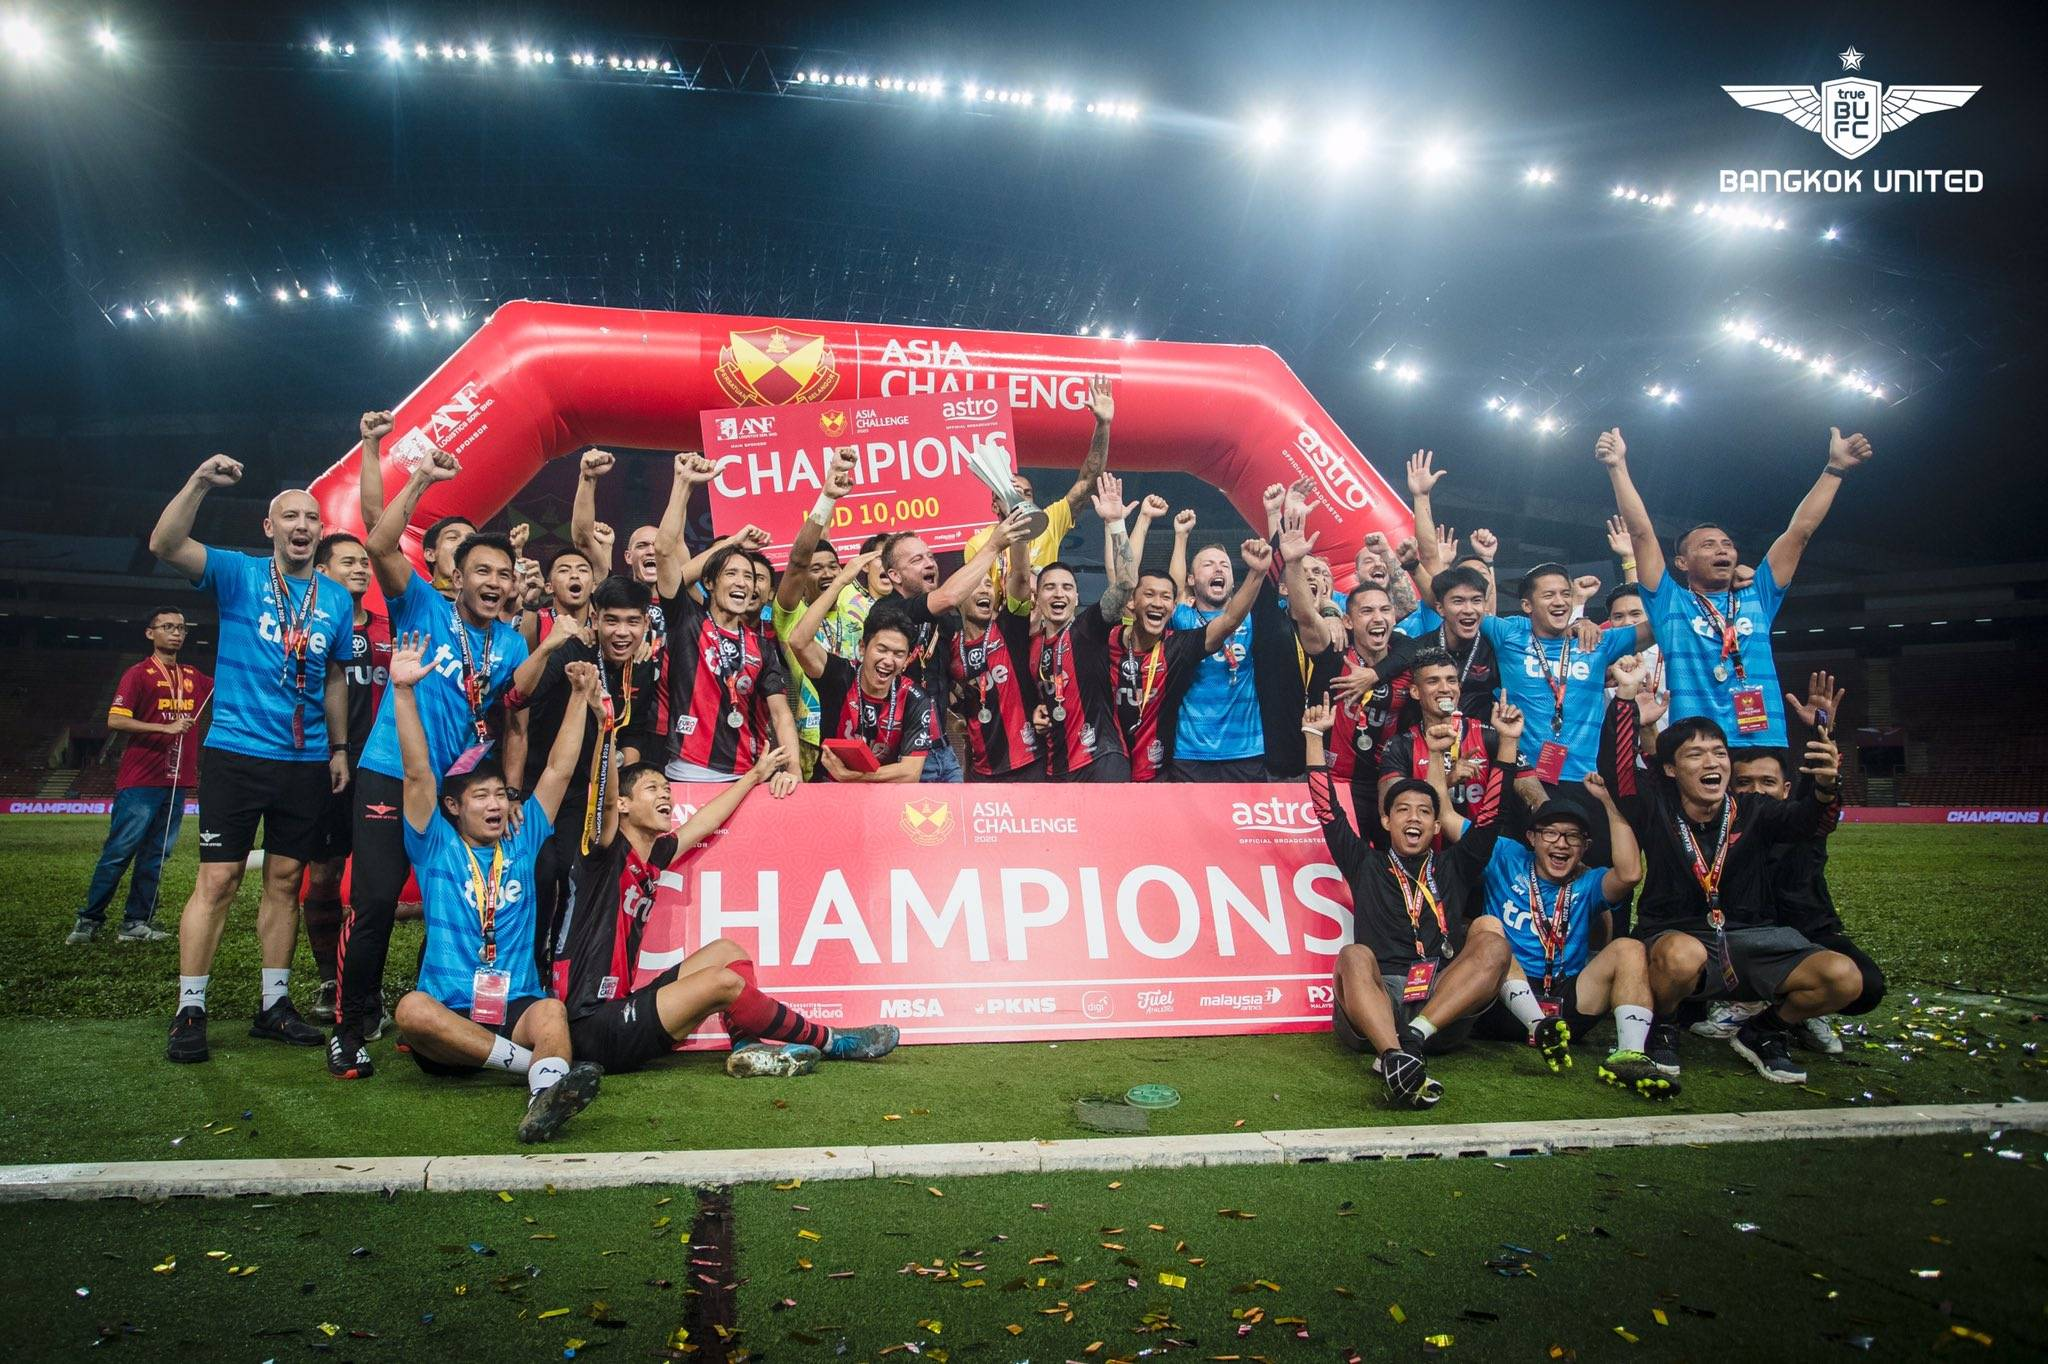 True Bangkok United Wins the 2020 Selangor Asia Challenge at a Waterlogged Shah Alam